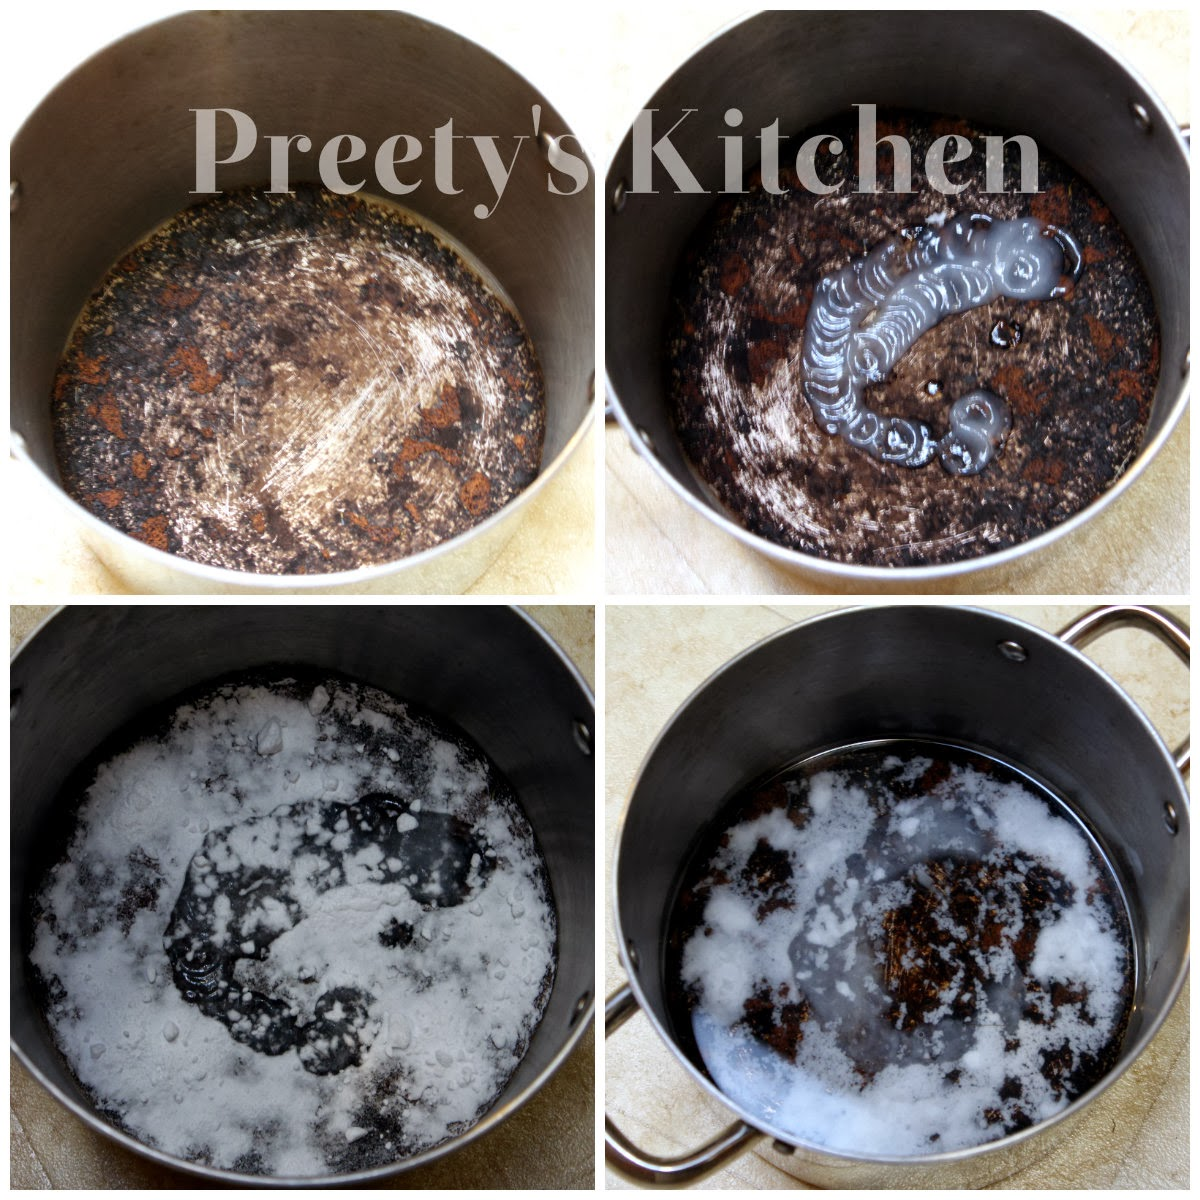 1 Put 2 Tbsp Of Dish Soap In The Burnt Pan